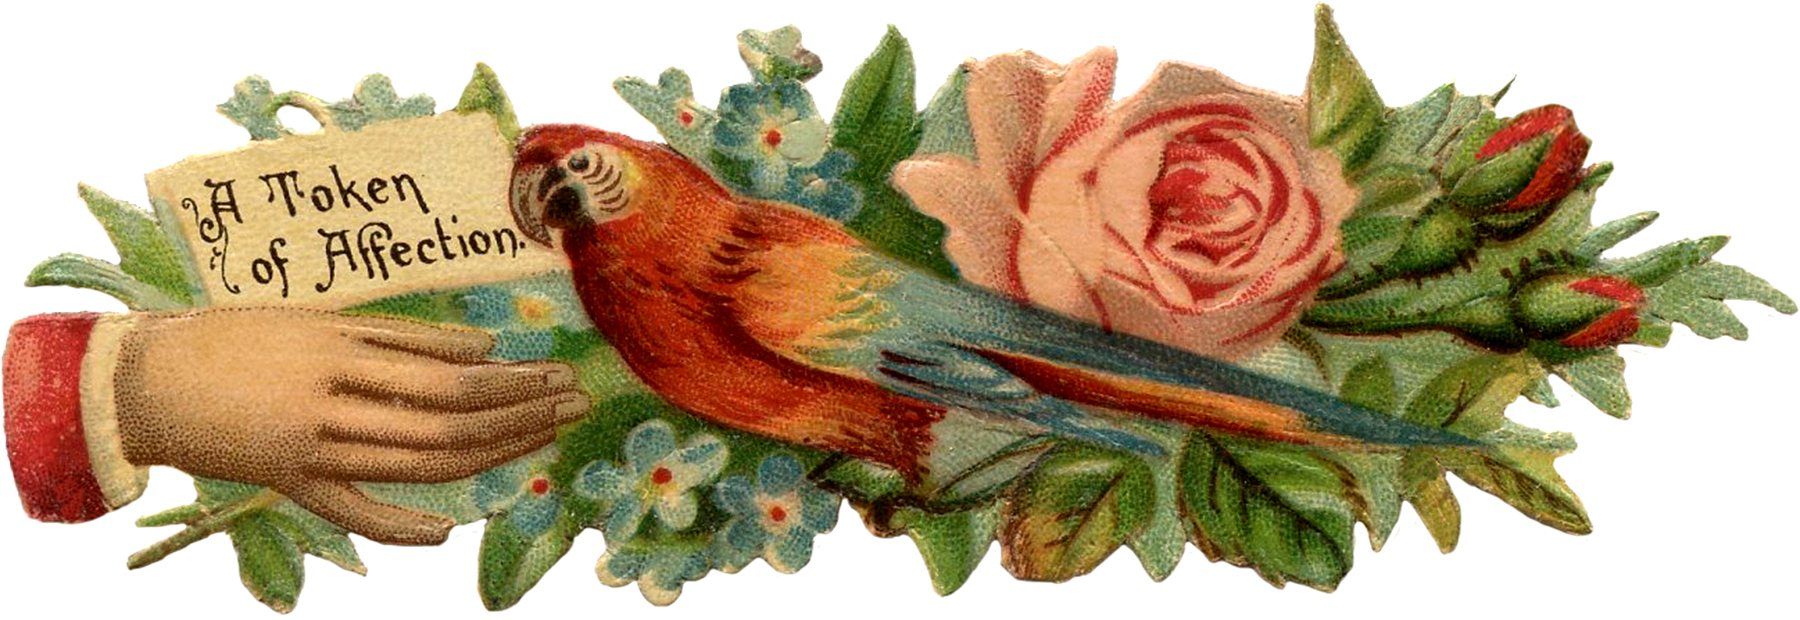 Victorian Scrap Hand with Parrot